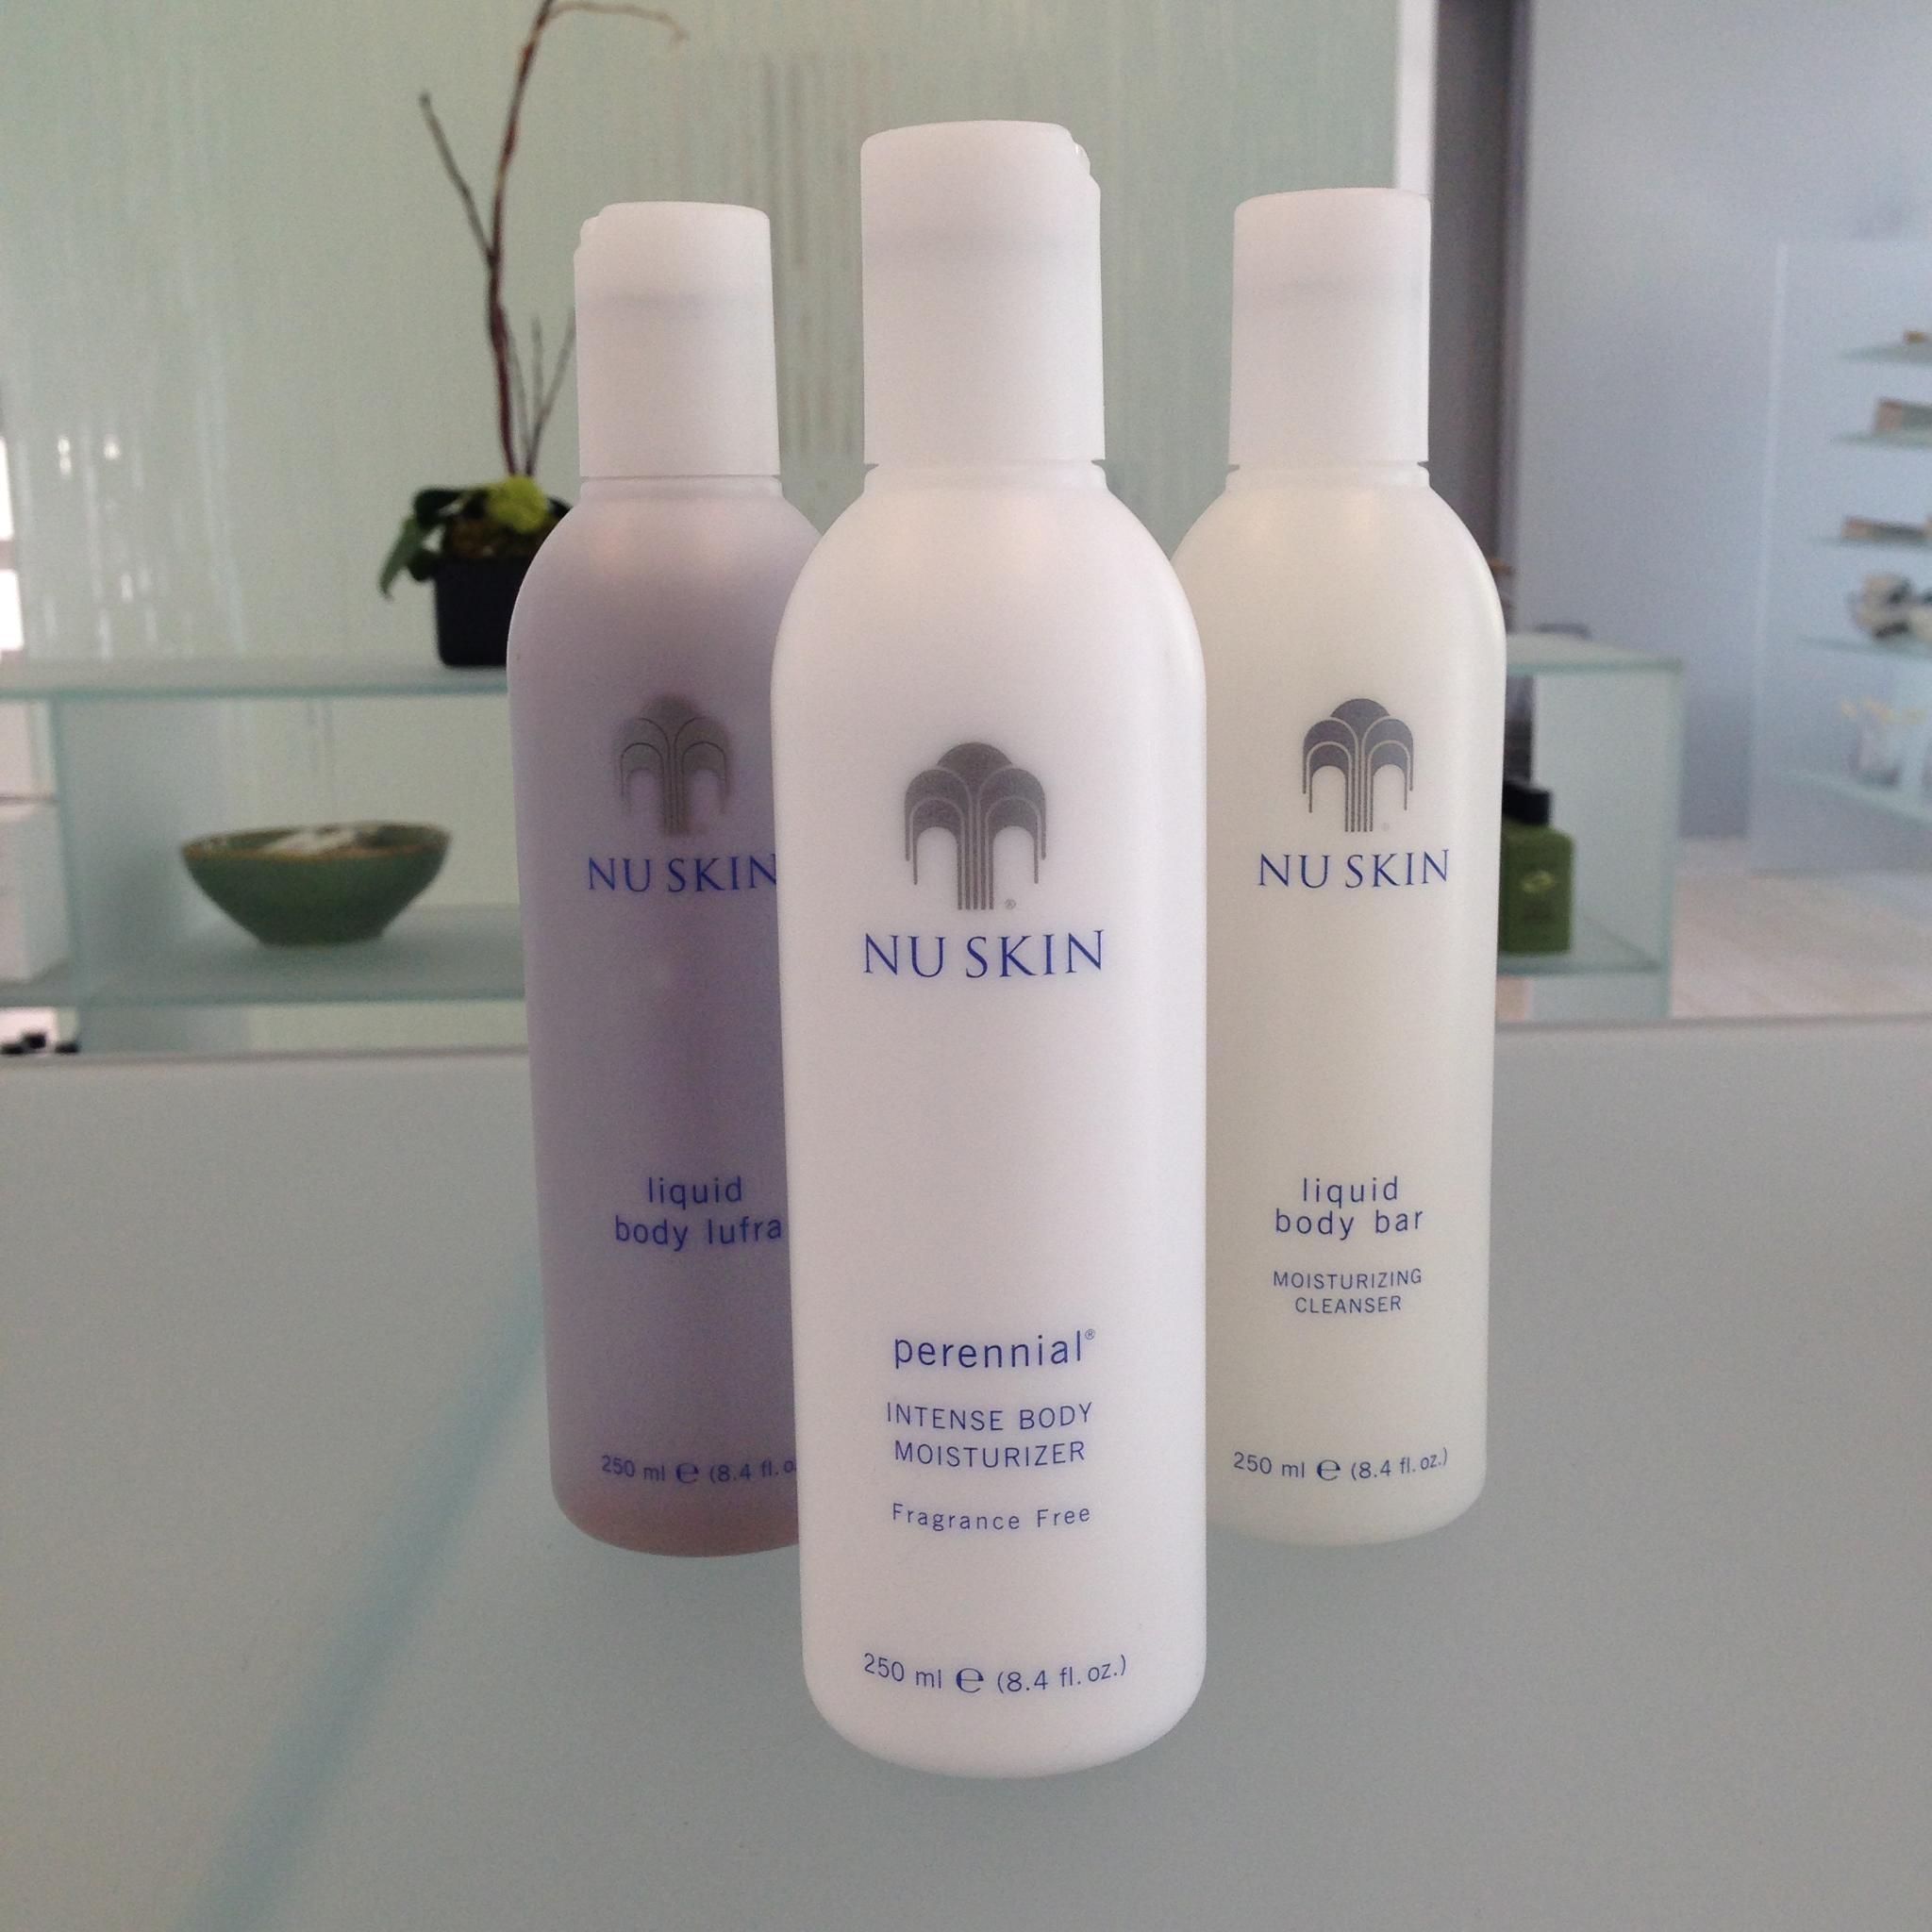 44 Best Nuskin Business Images On Pinterest Nu Skin Anti Aging Scrub Liquid Body Lufra 250ml And Care